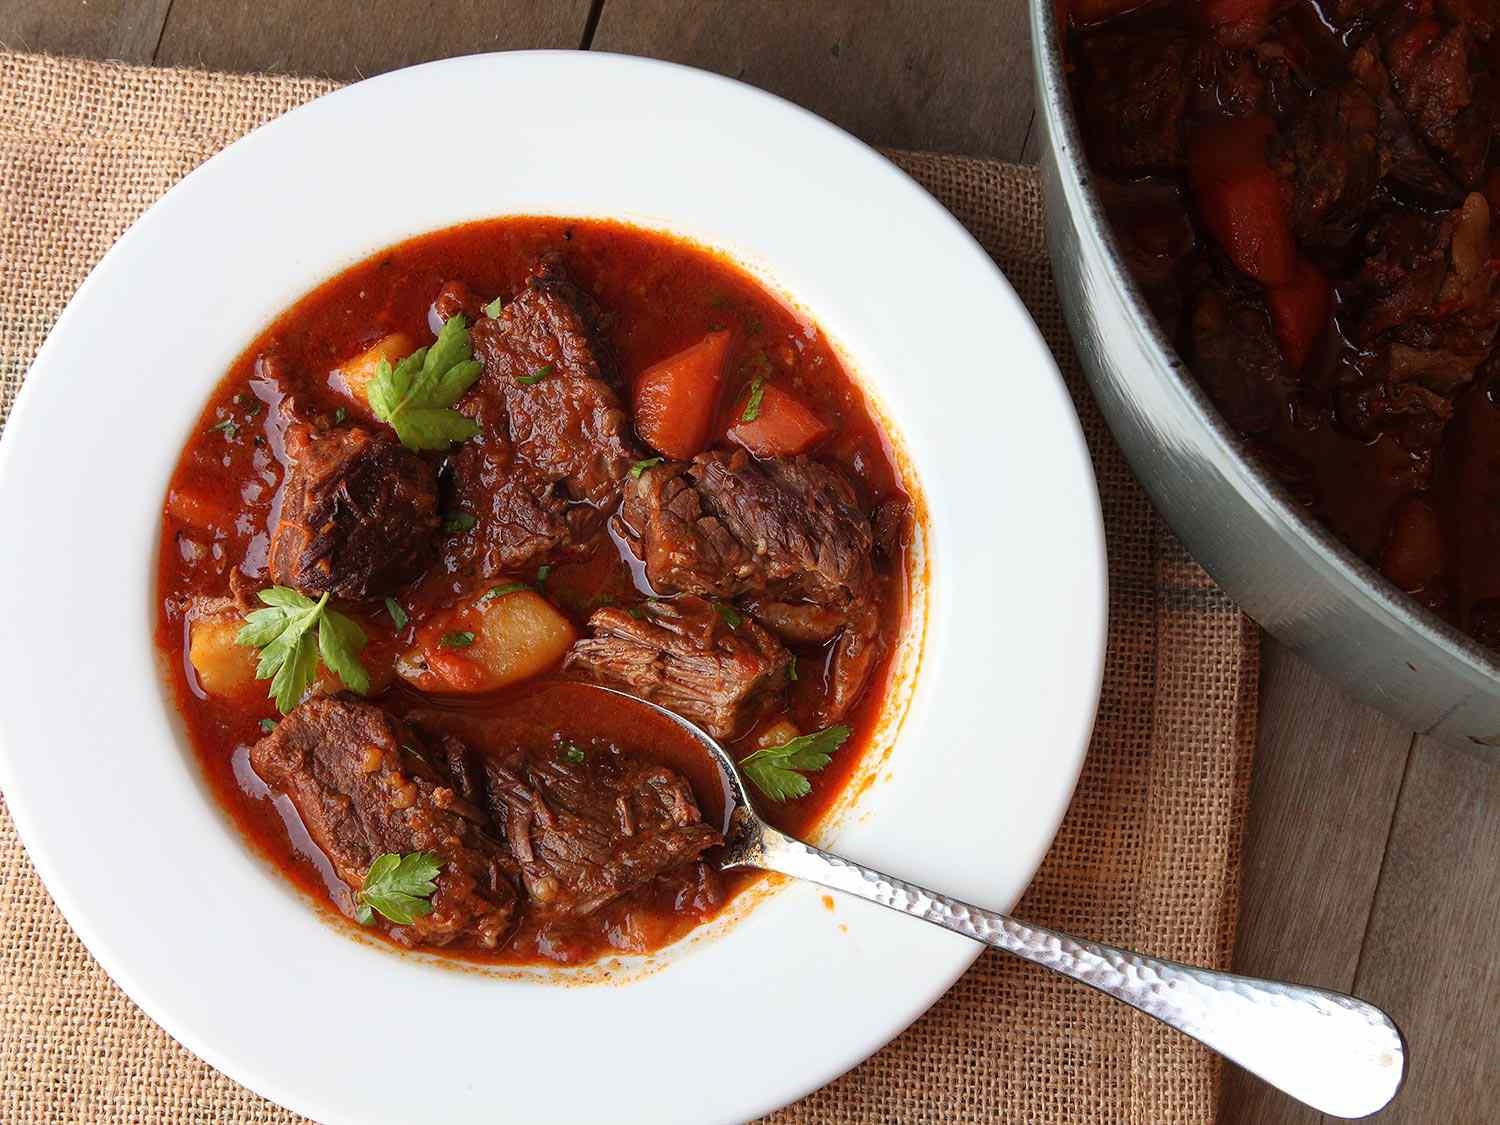 Hungarian Goulash (Beef Stew With Paprika) in a white bowl.